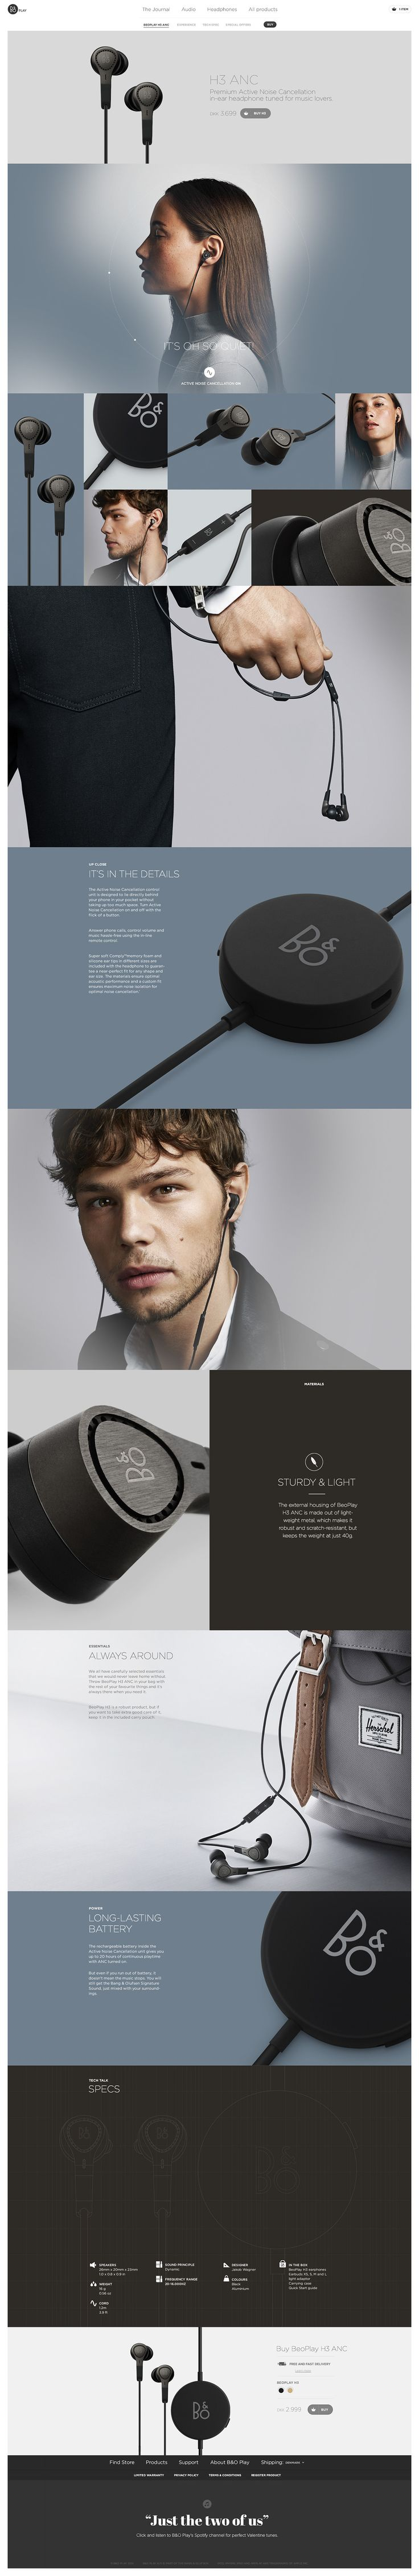 BeoPlay H3 by Søren Smidt